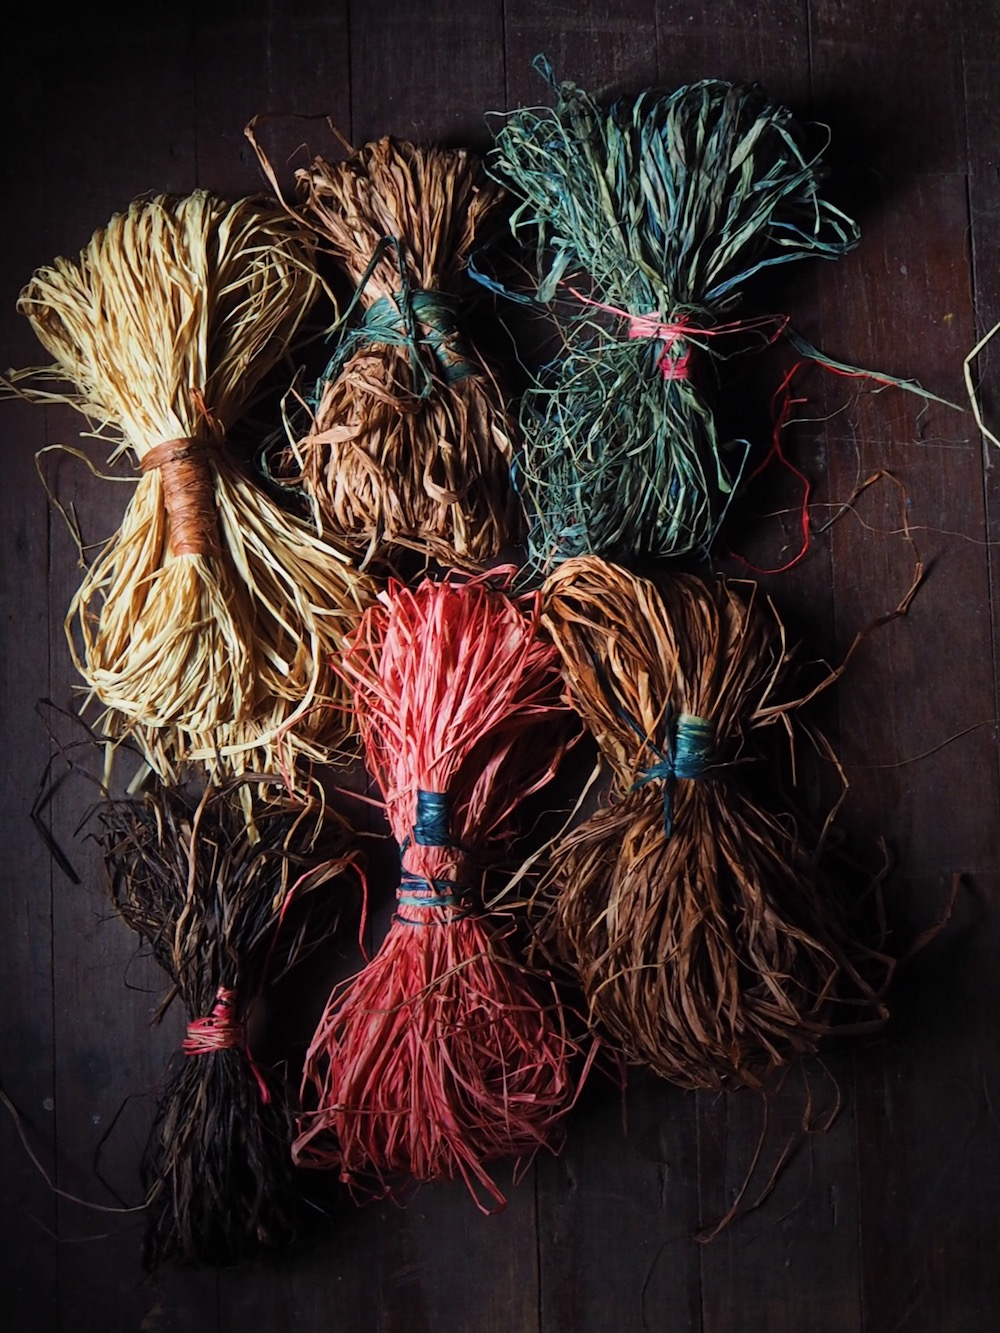 Petalplum blog naturally dyed raffia for basket weaving.jpg